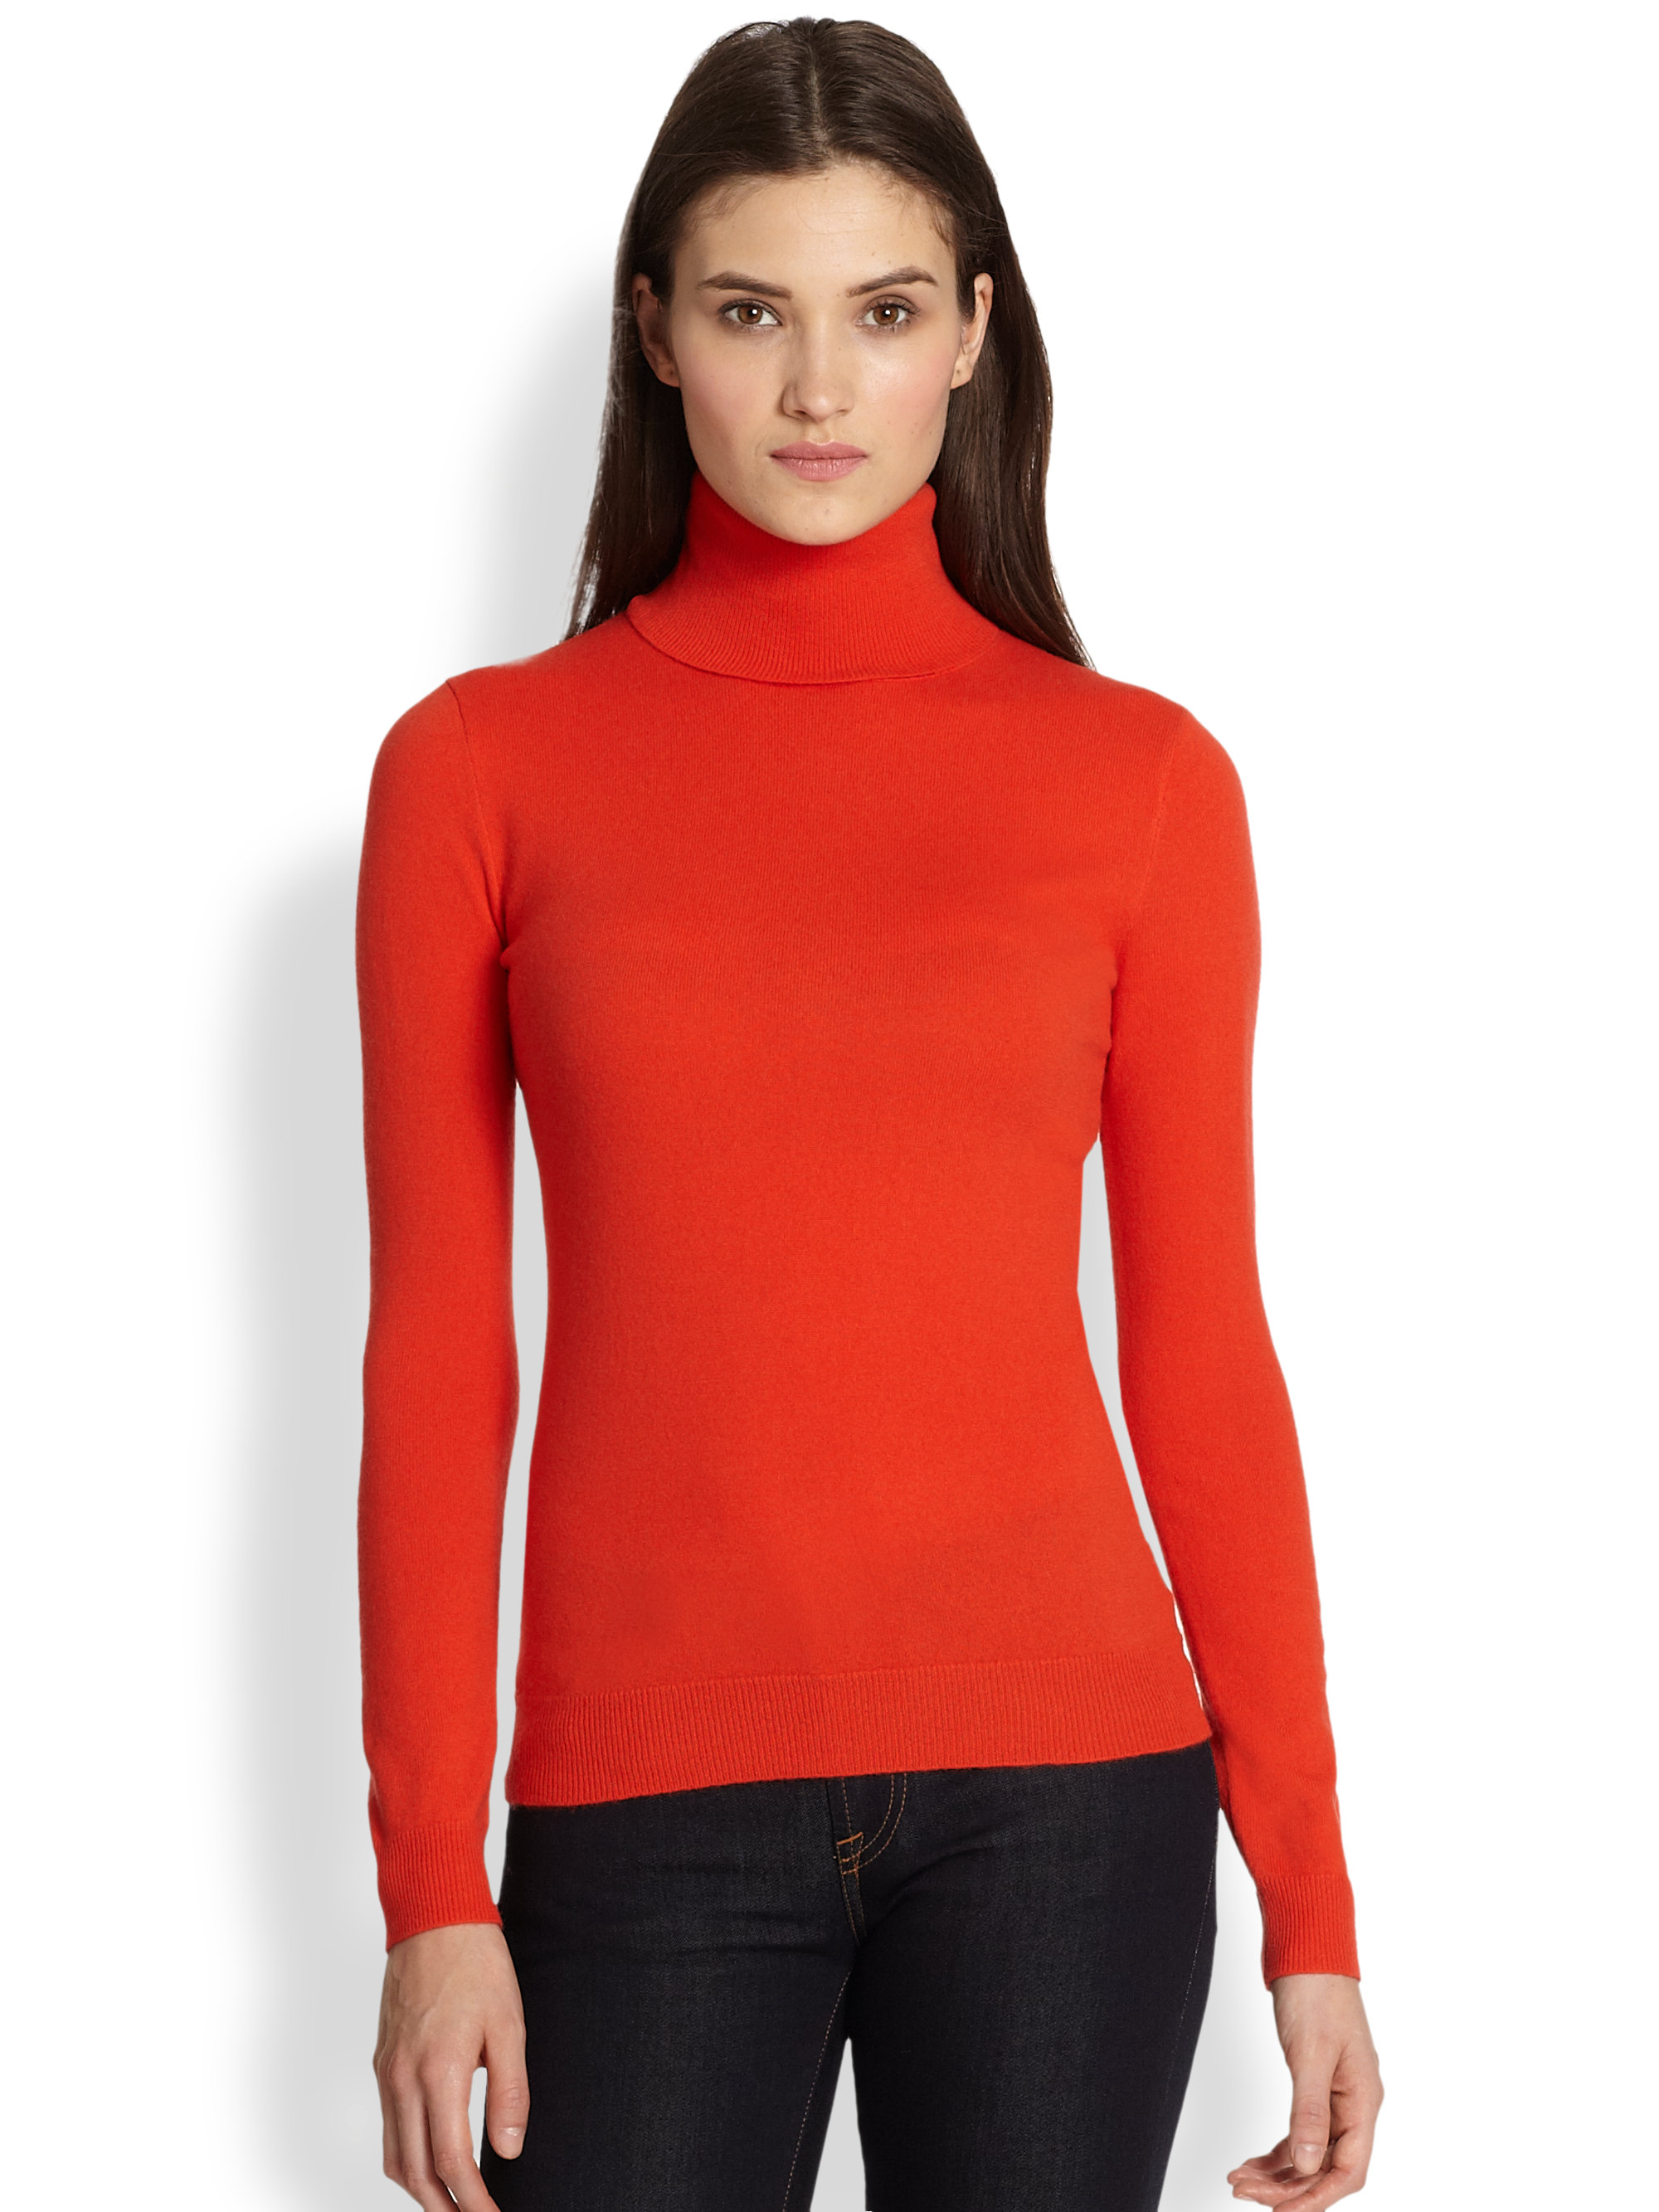 Ralph lauren black label Cashmere Turtleneck Sweater in Red | Lyst